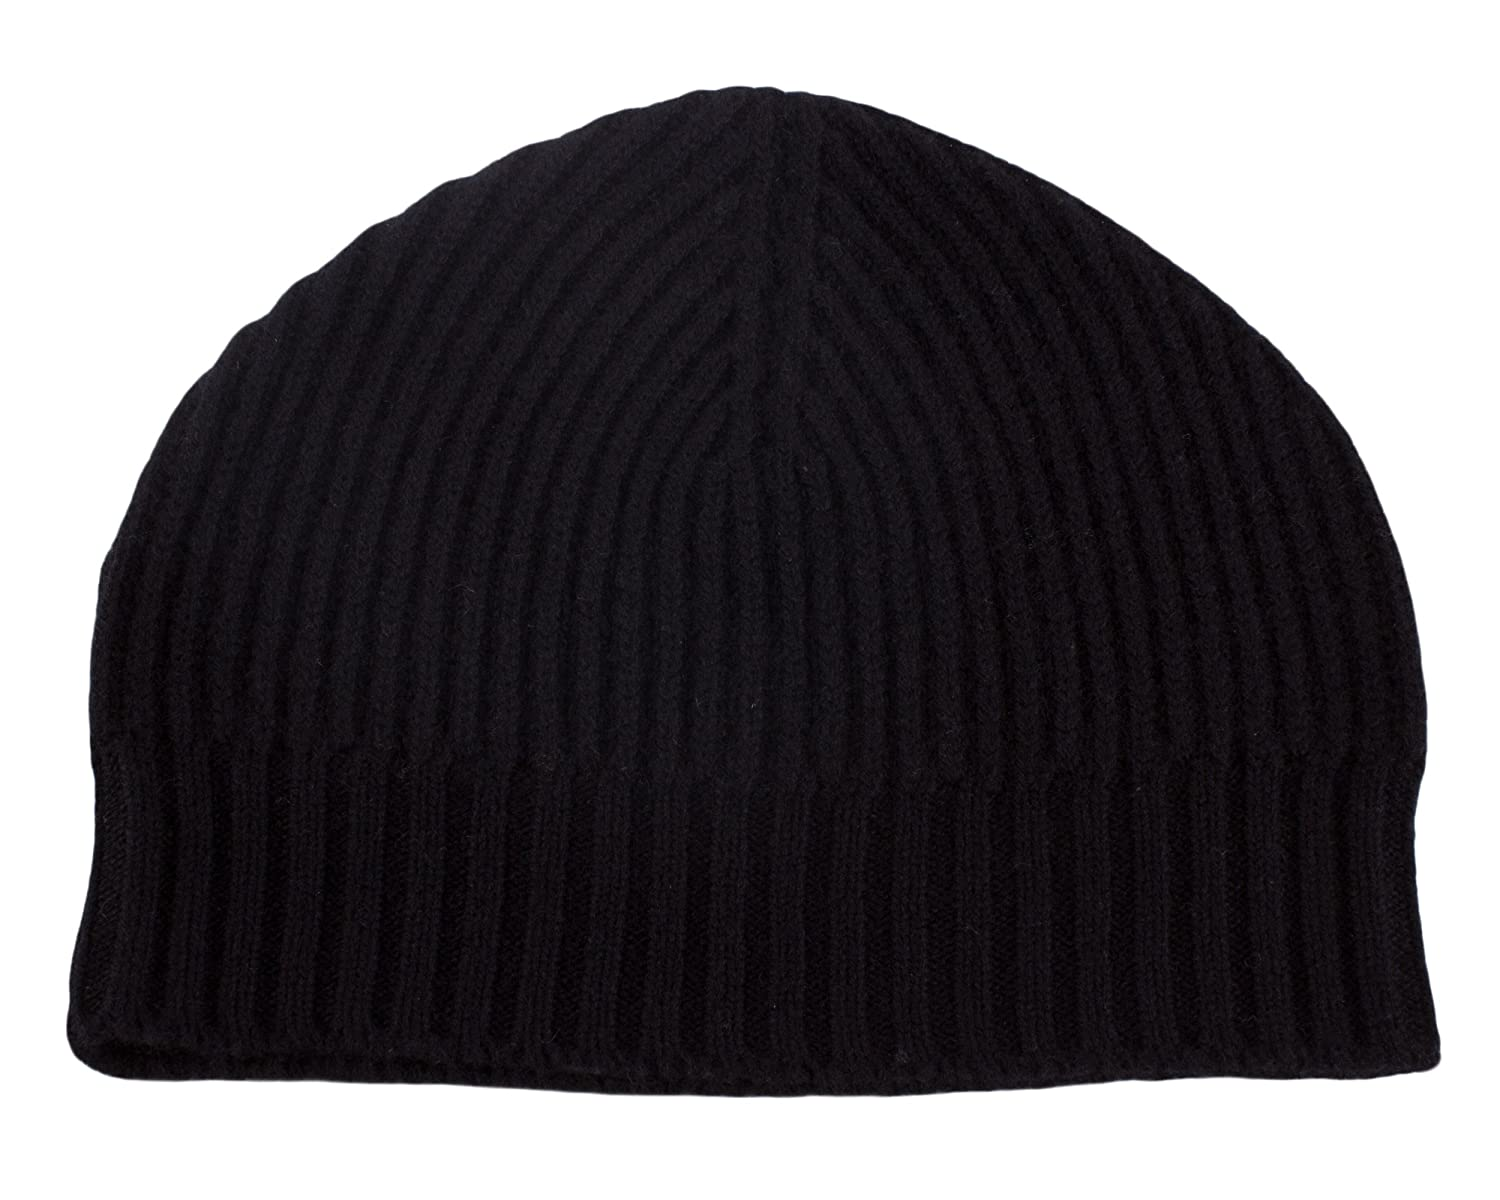 aeada80b704 Love Cashmere Mens Ribbed 100% Cashmere Beanie Hat - Black - Made in  Scotland RRP  180 at Amazon Men s Clothing store